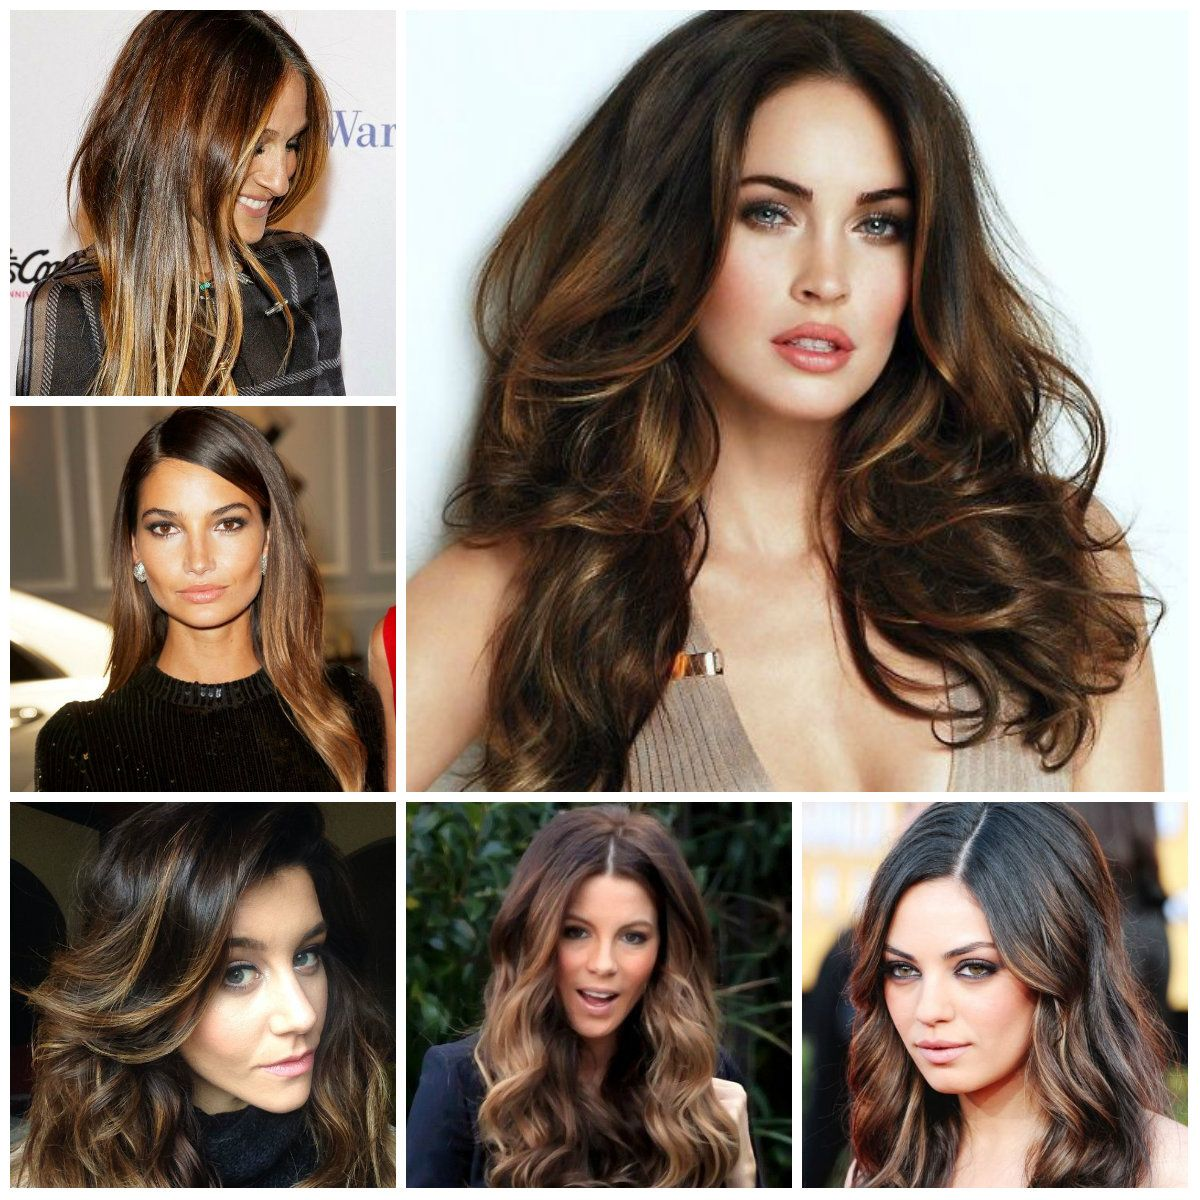 Hairstyles 2016 dark hair - Hair Highlights 2016 Haircuts Hairstyles 2016 And Hair Colors For Short Long Medium Hairstyles